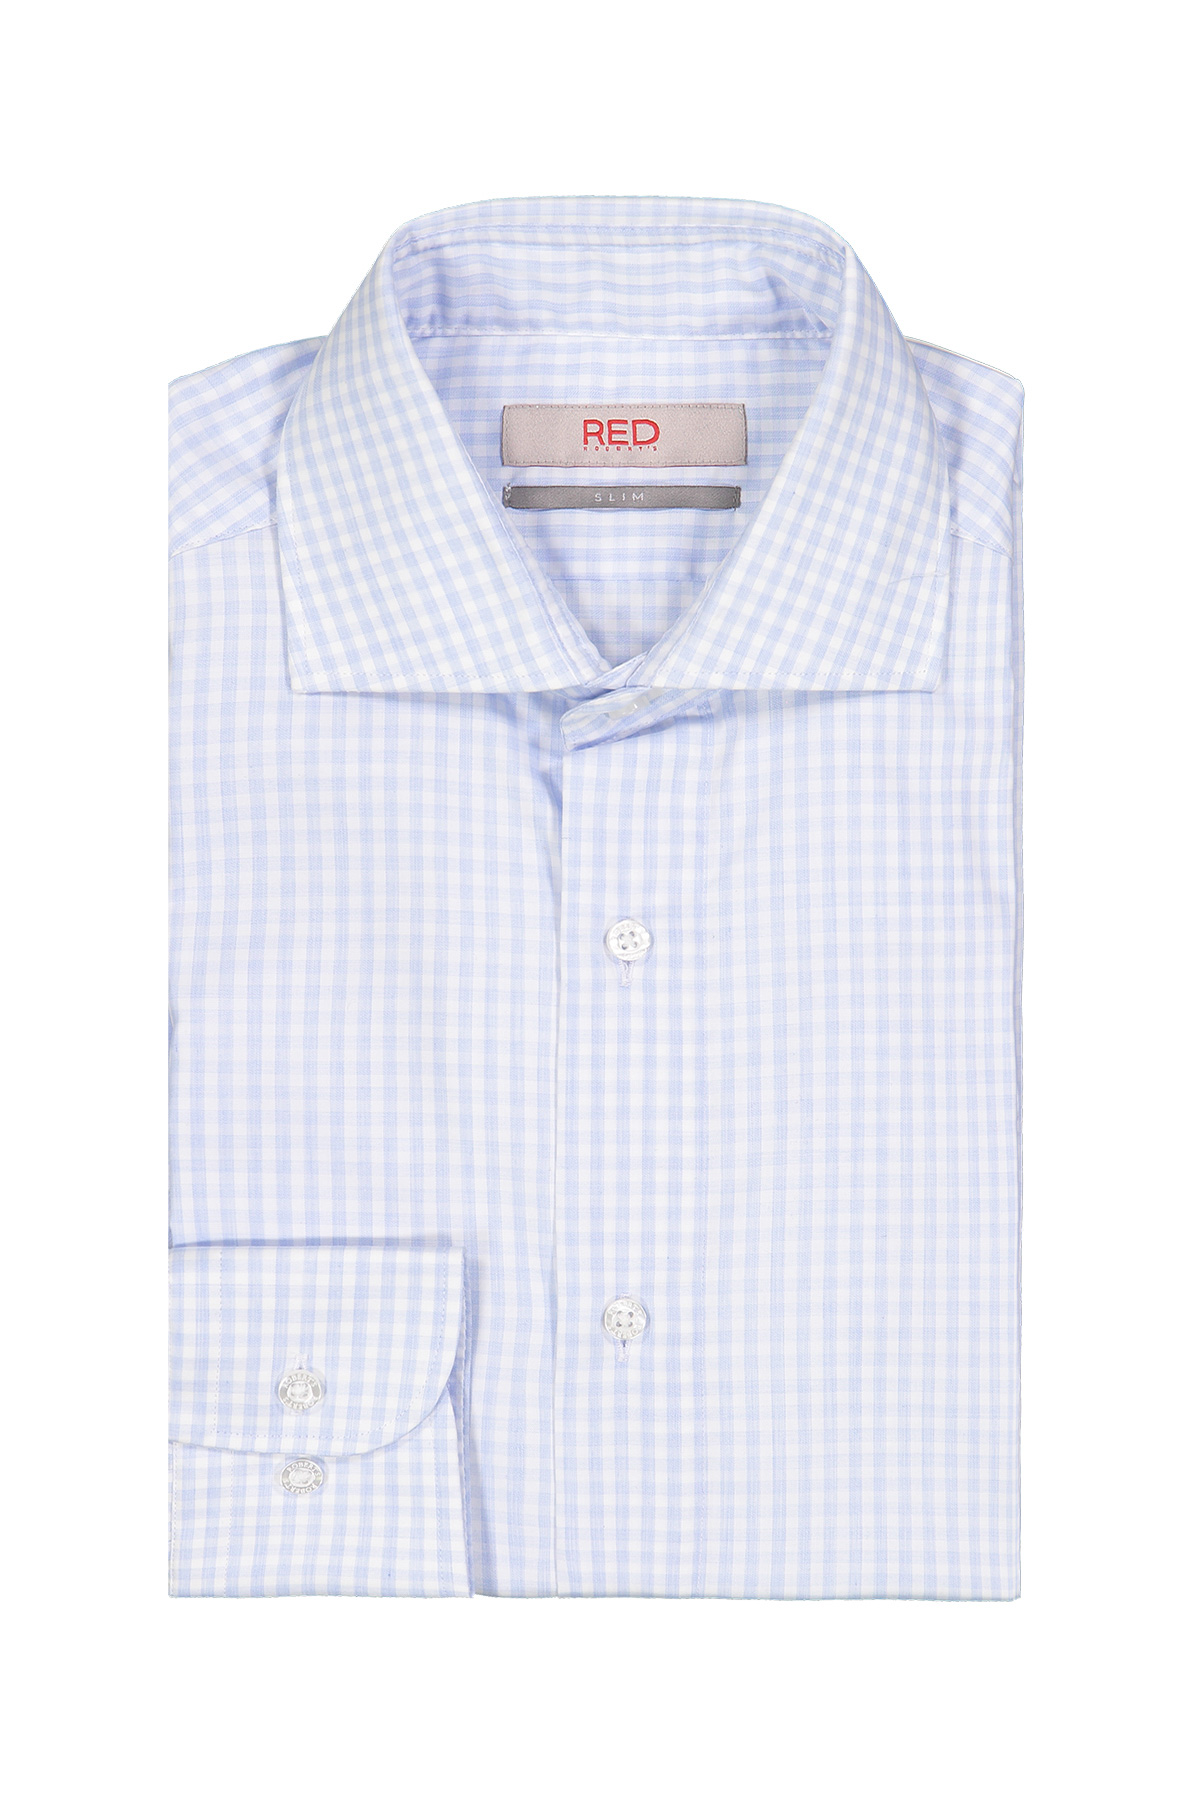 Camisa Robert´s Red, slim fit, celeste a cuadros, puño simple.